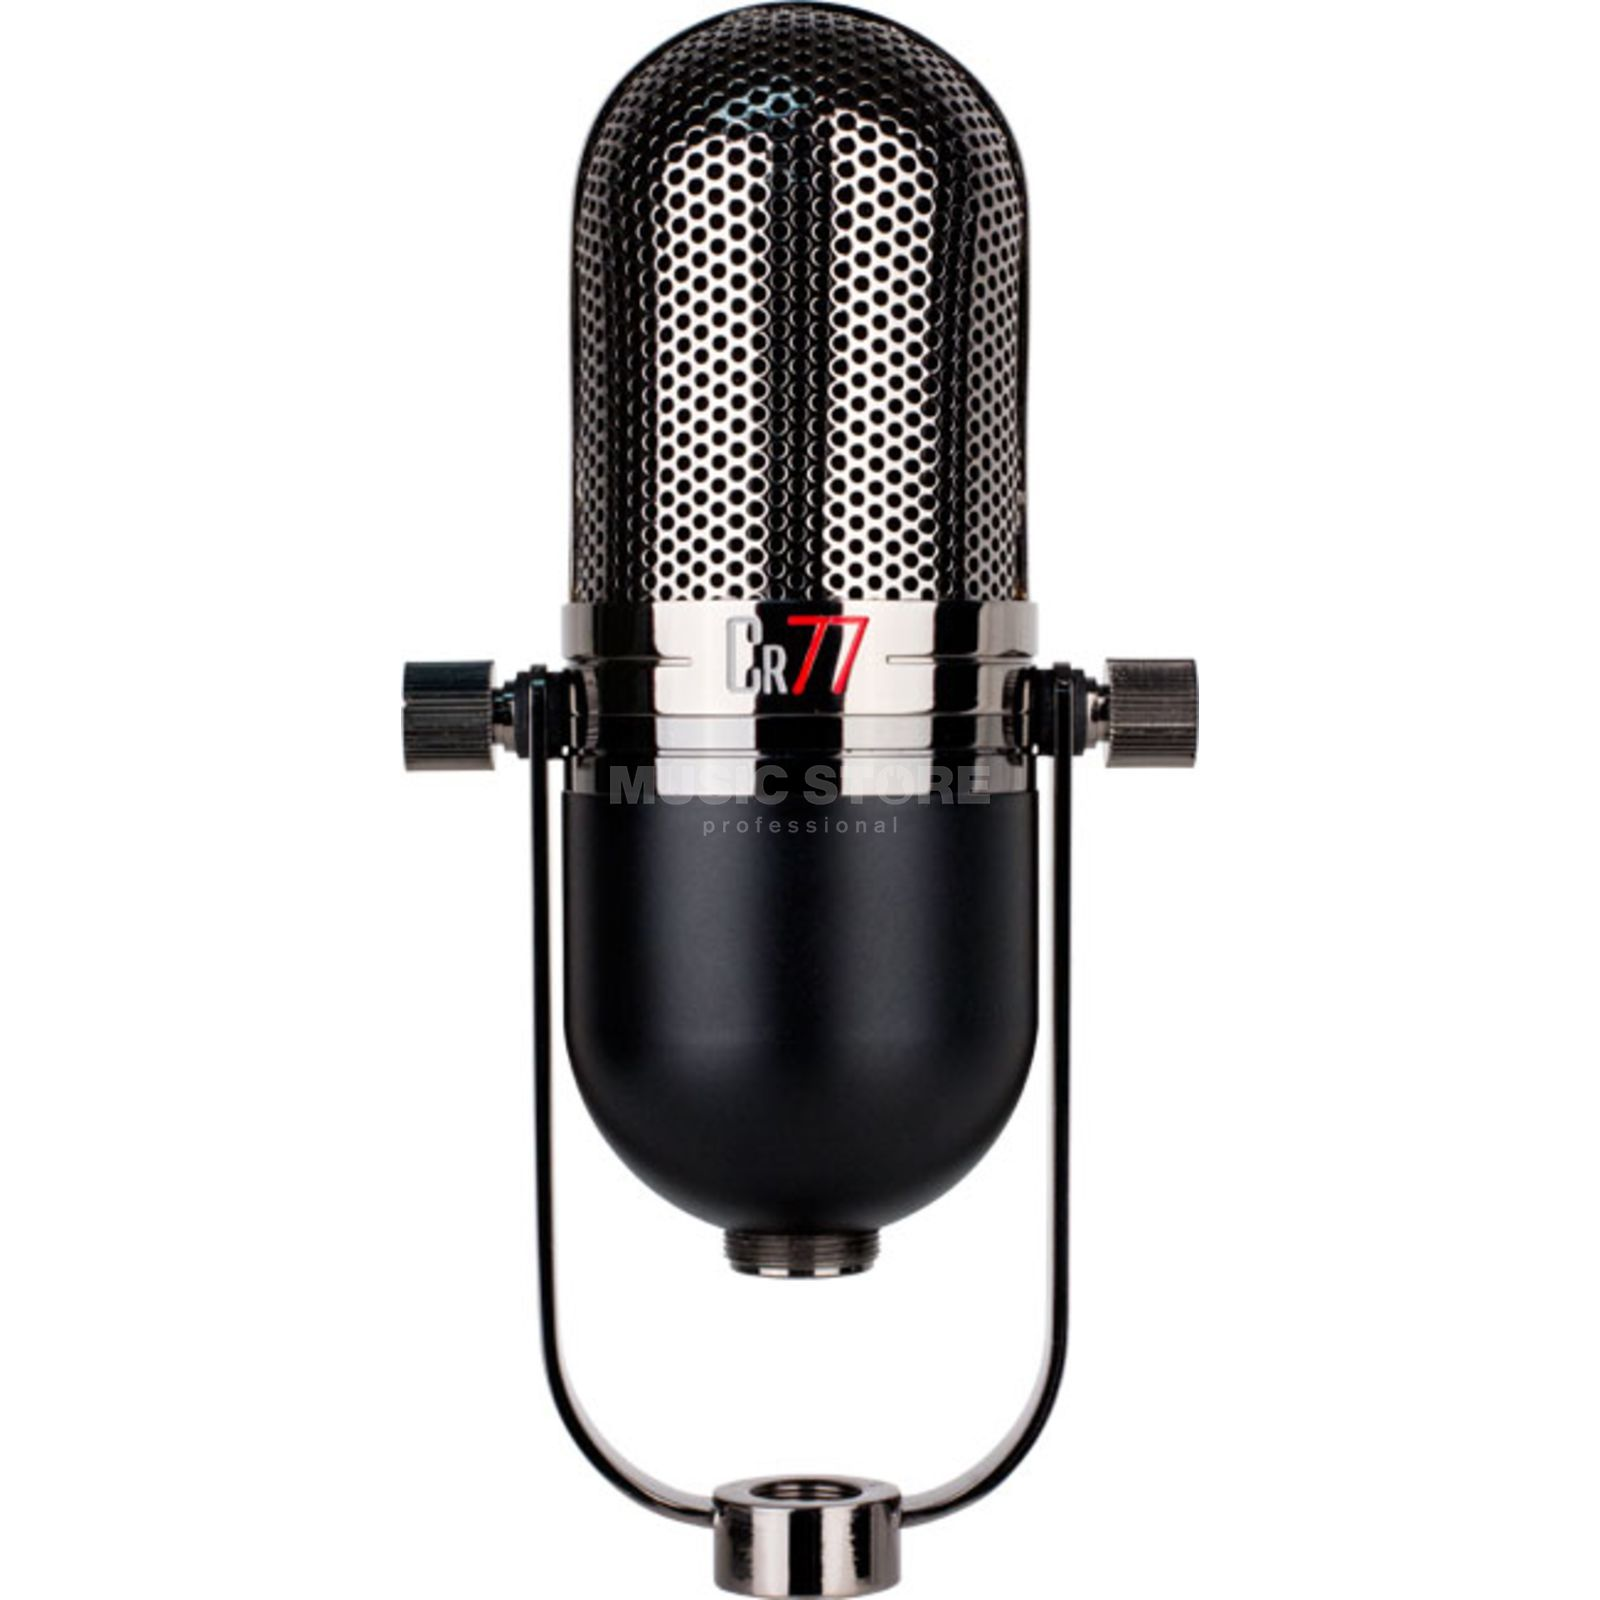 MXL CR 77 Dynamic Stage Vocal Mikrofon Produktbild